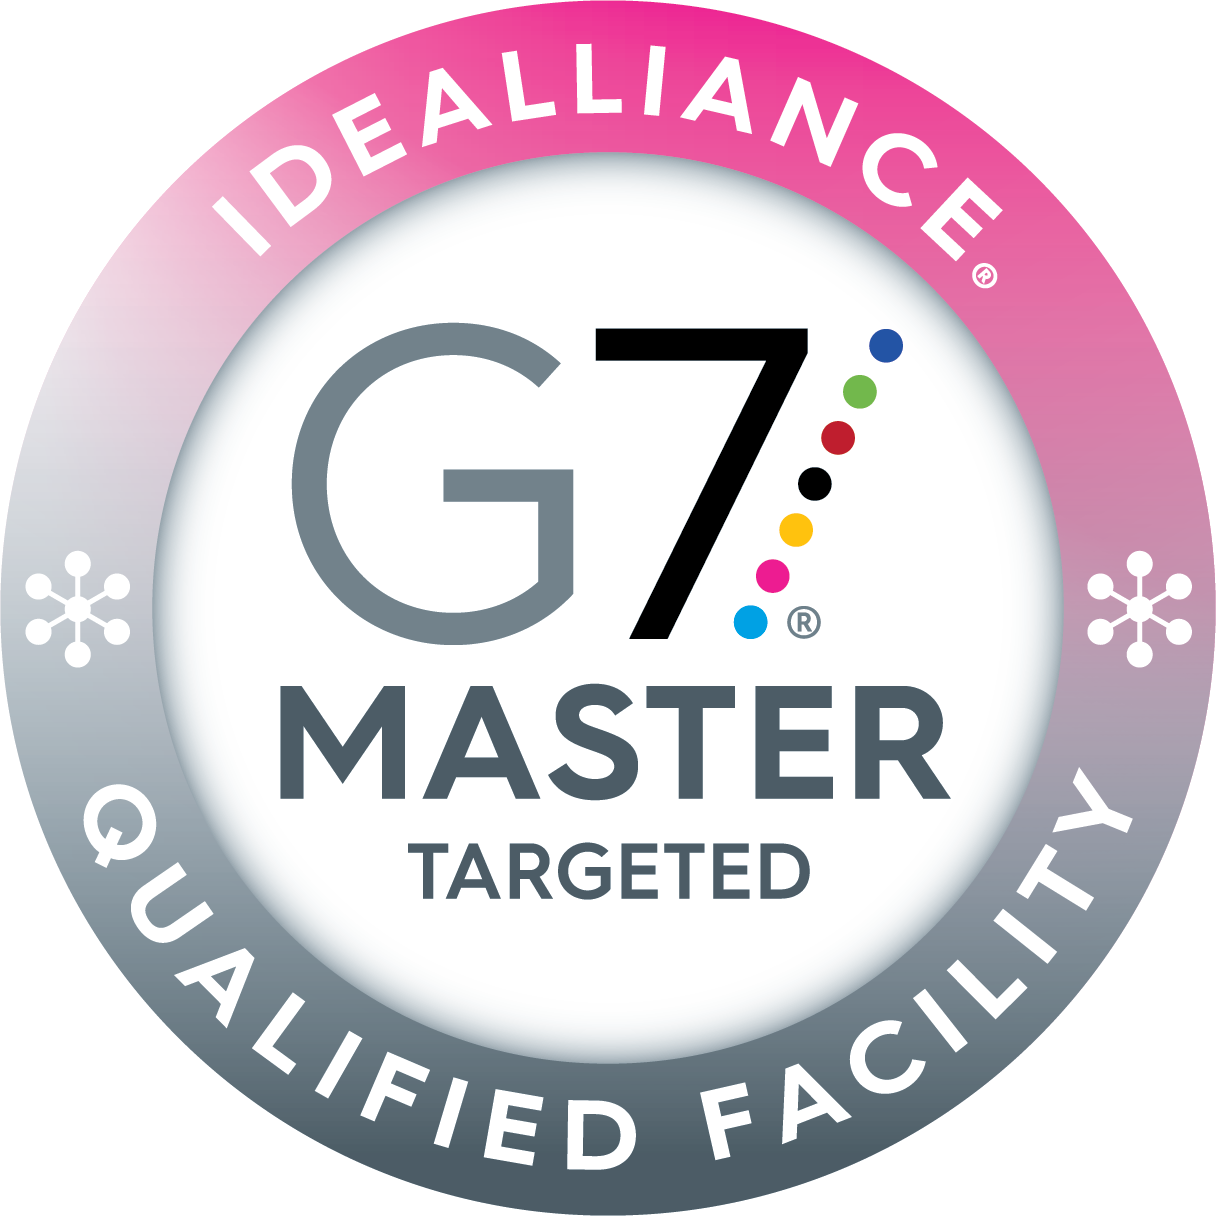 idealliance_certbadge_G7mastertargeted_qf